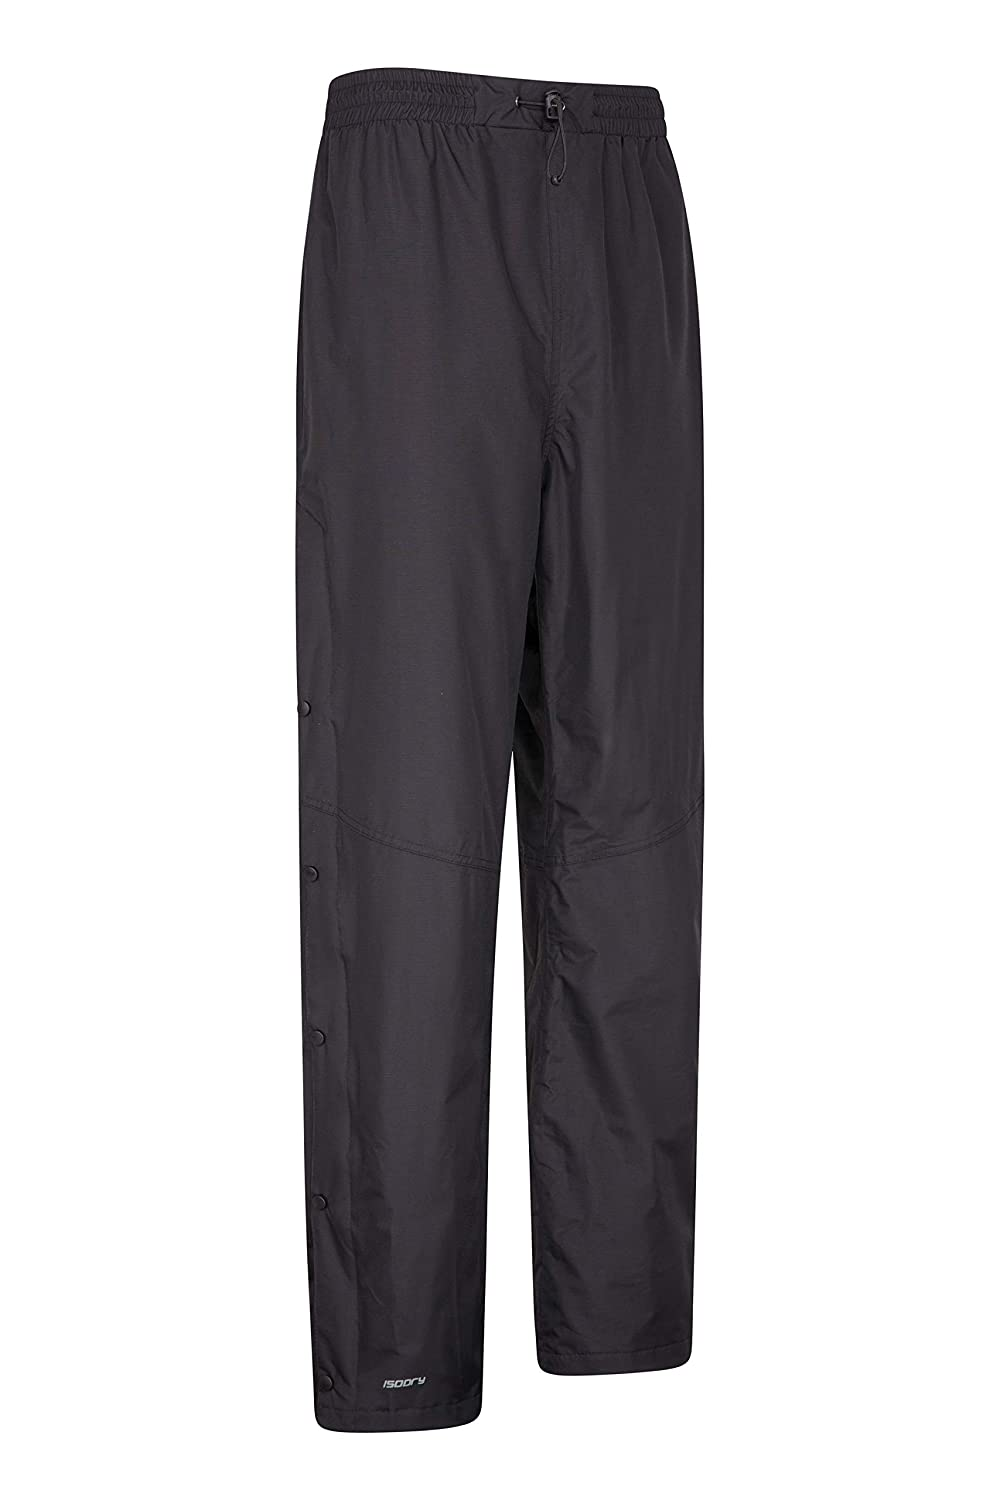 Waterproof Spring Pants Mountain Warehouse Downpour Mens Trousers